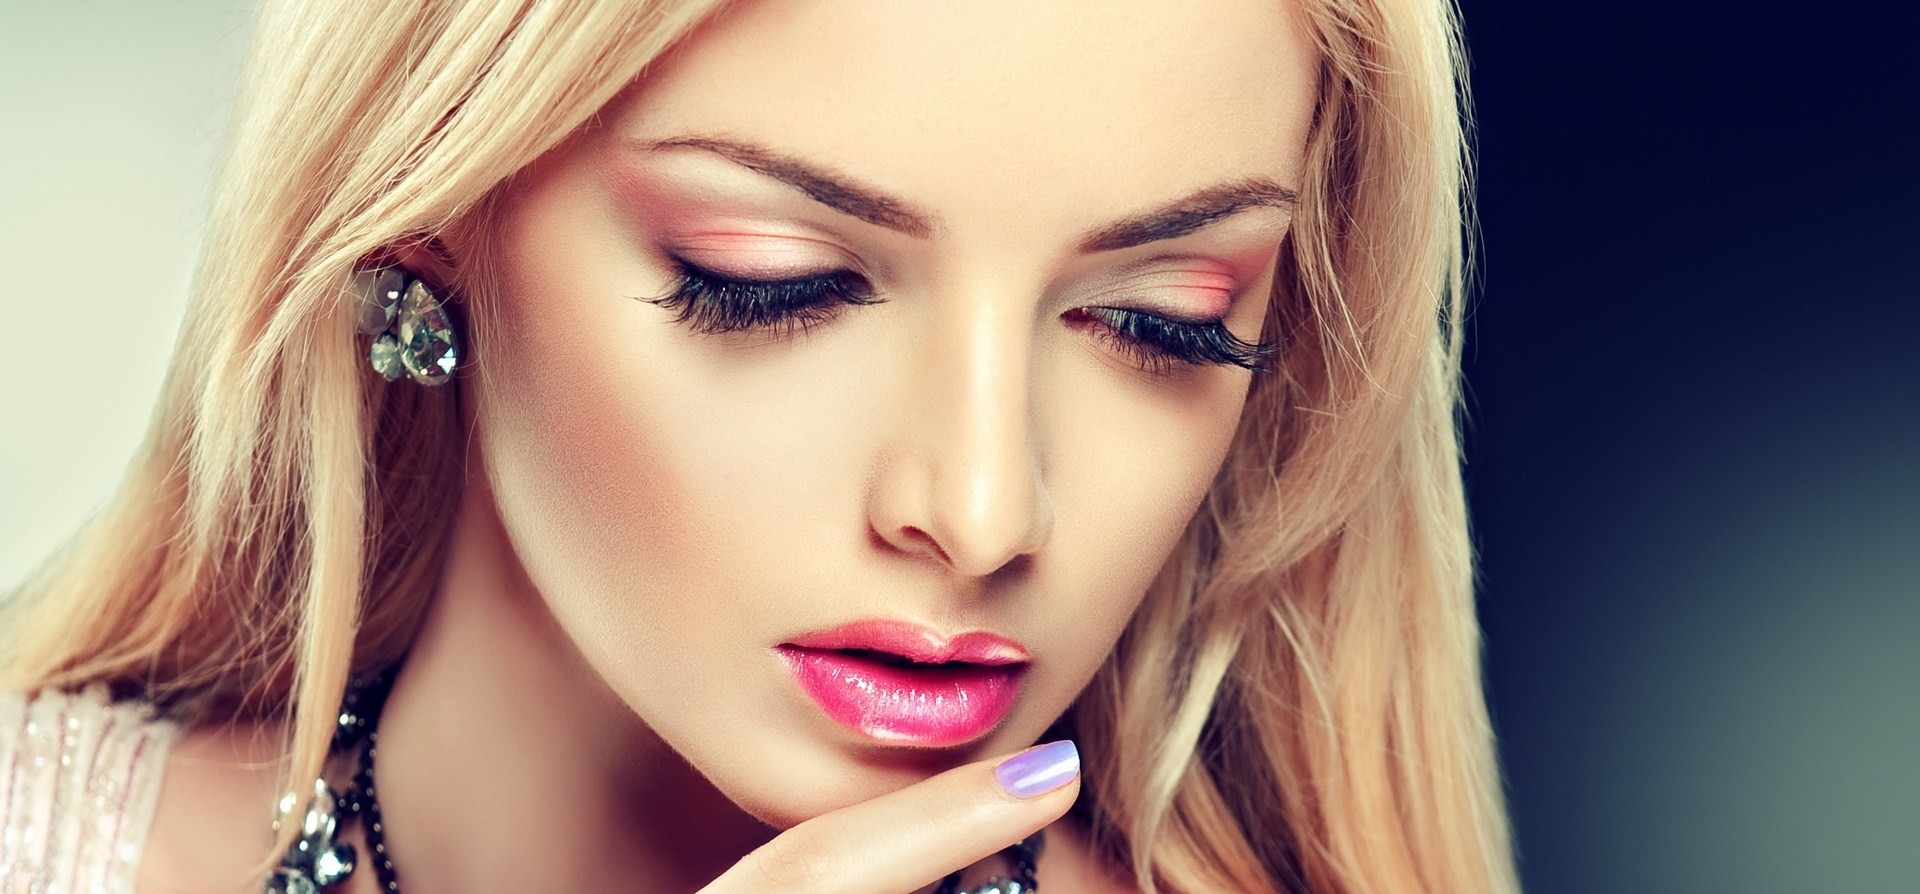 Do you know how to do perfect make-up Part 2